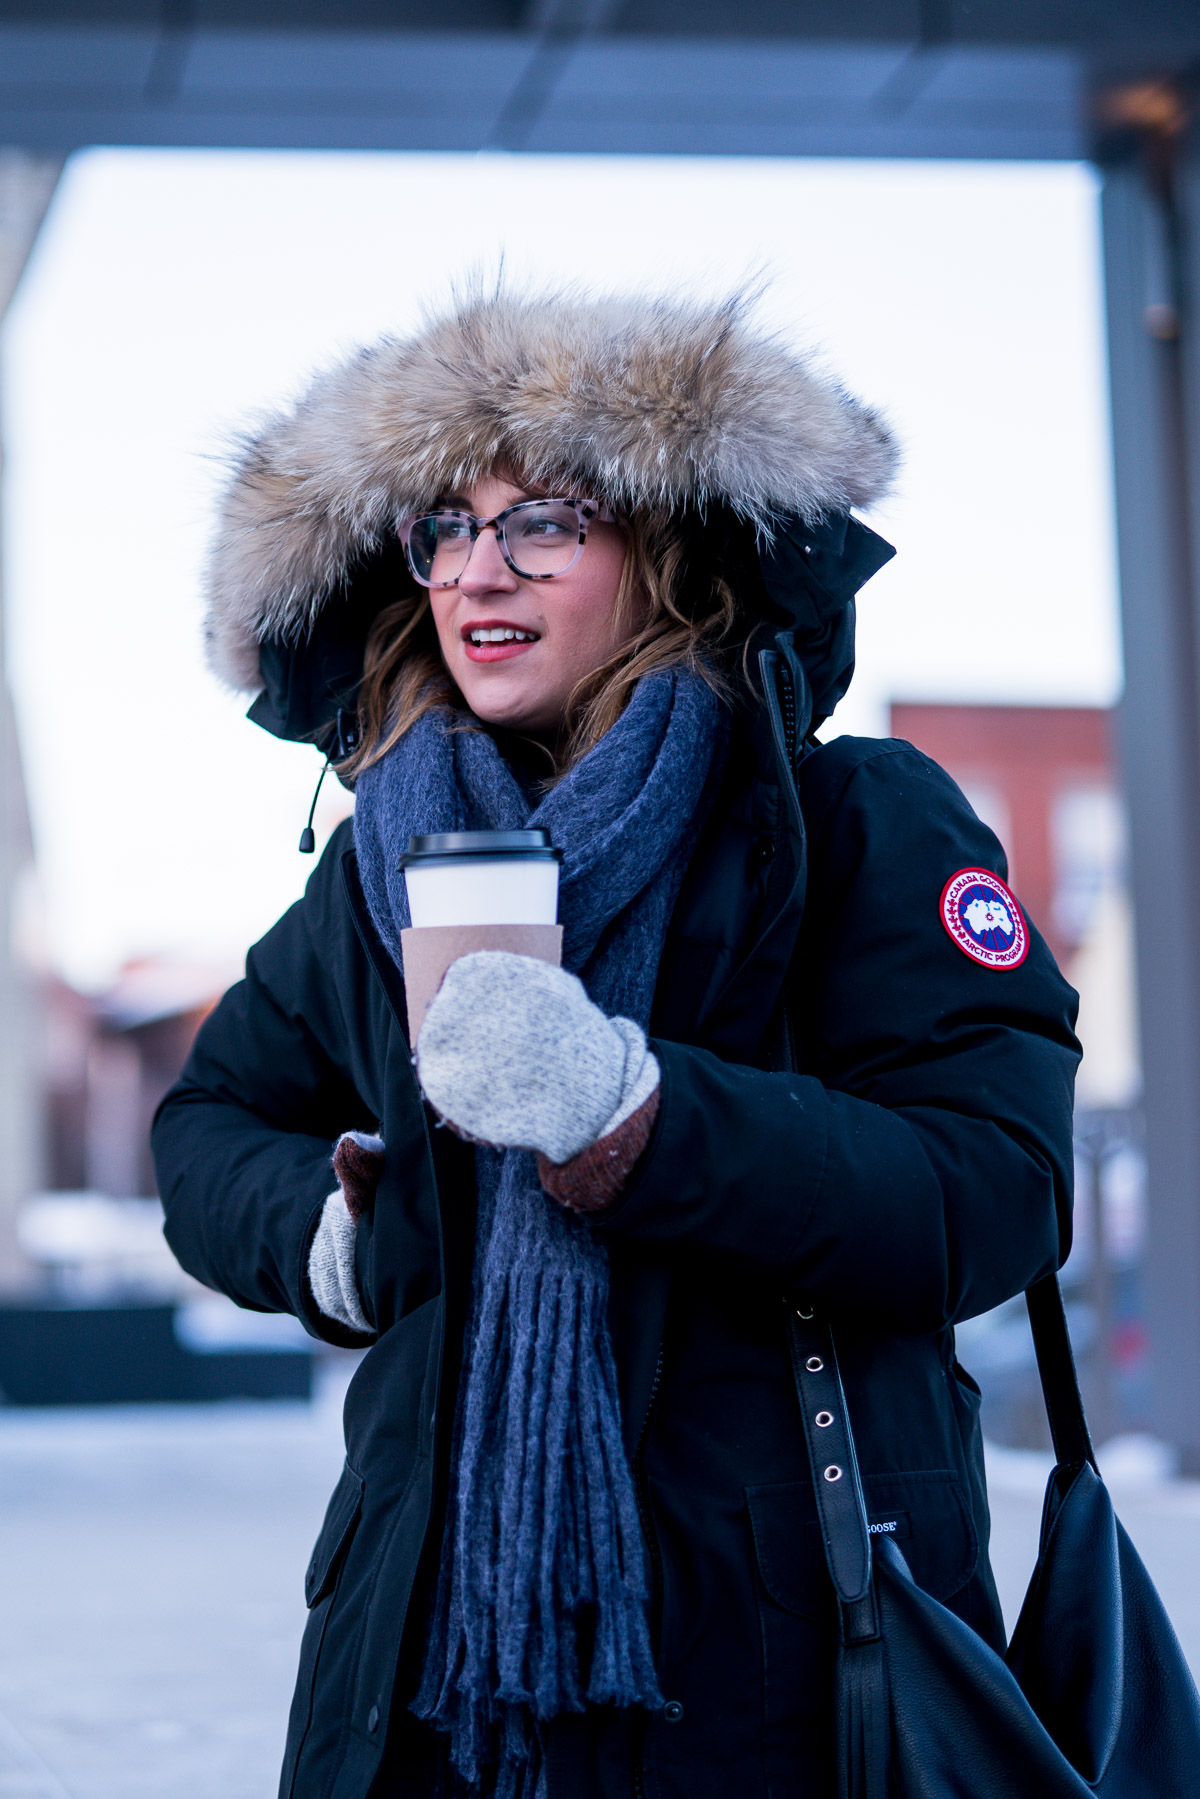 Canadian fashion and lifestyle blogger, Jackie from Something About That stays warm in her Canada Goose Jacket and prevloved mittens